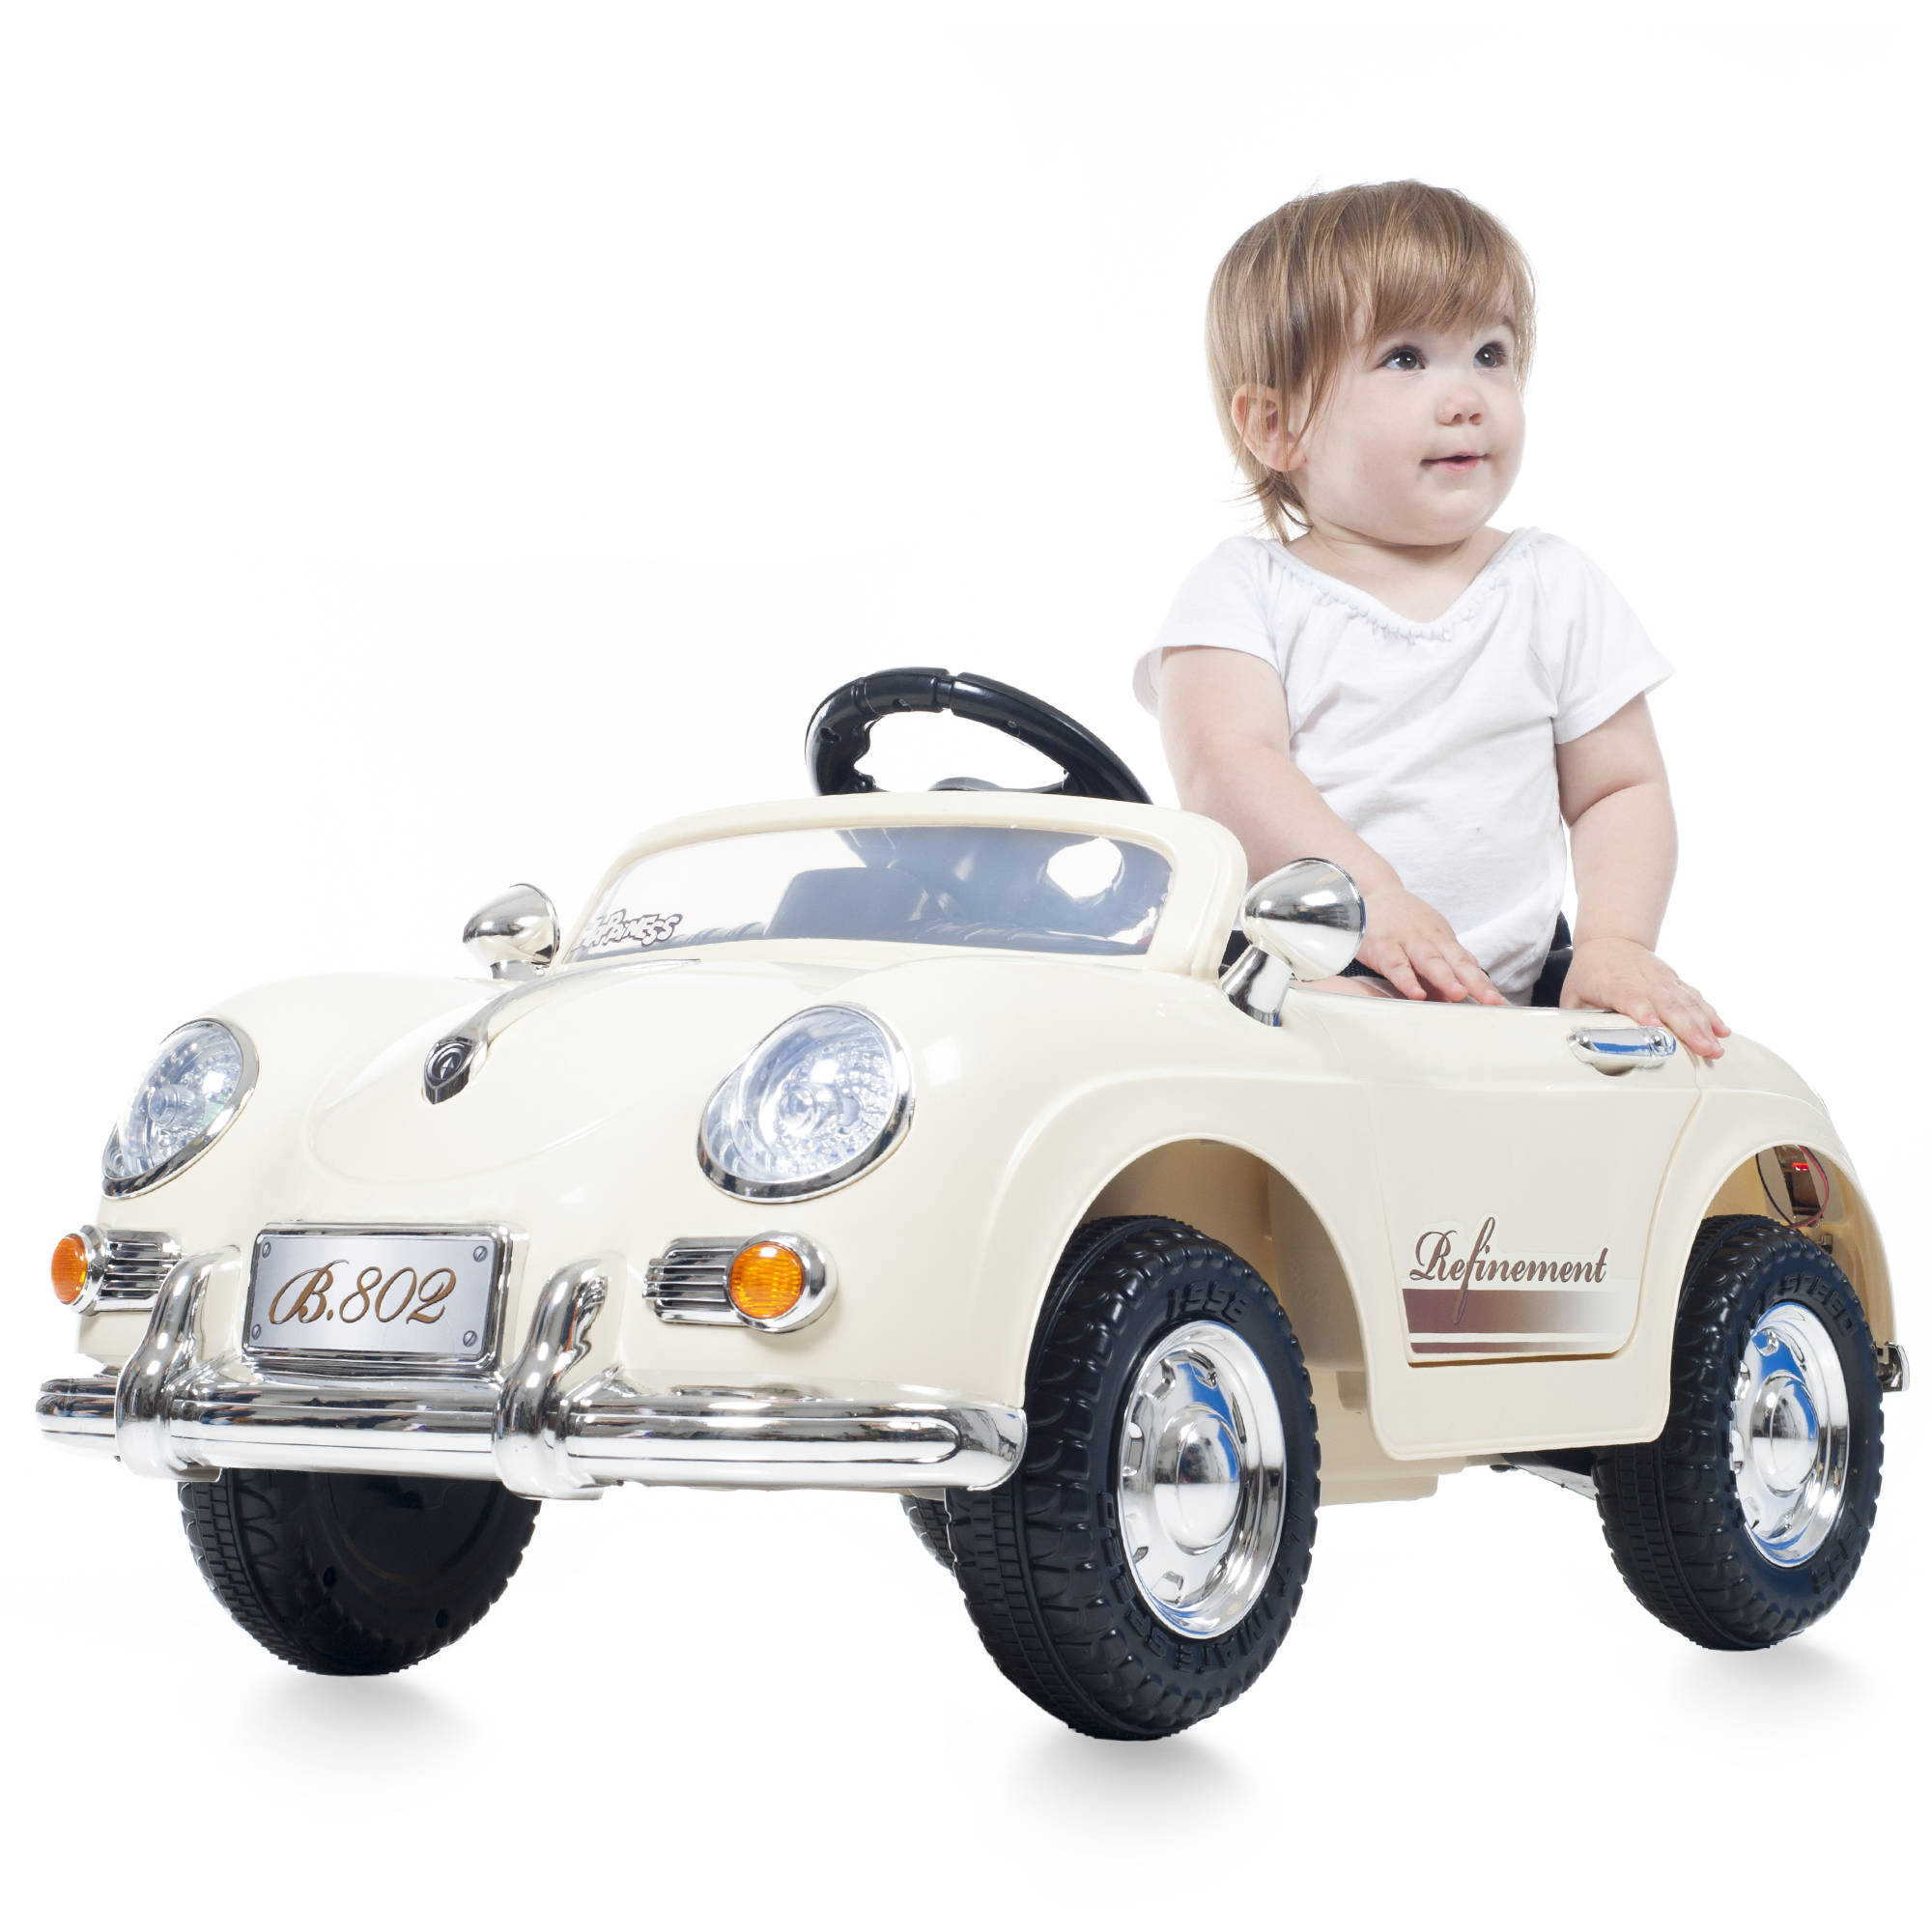 Ride On Toy Car Battery Operated Clic Sports With Remote Control And Effects By Rockin Rollers Toys For Boys S 2 5 Year Olds